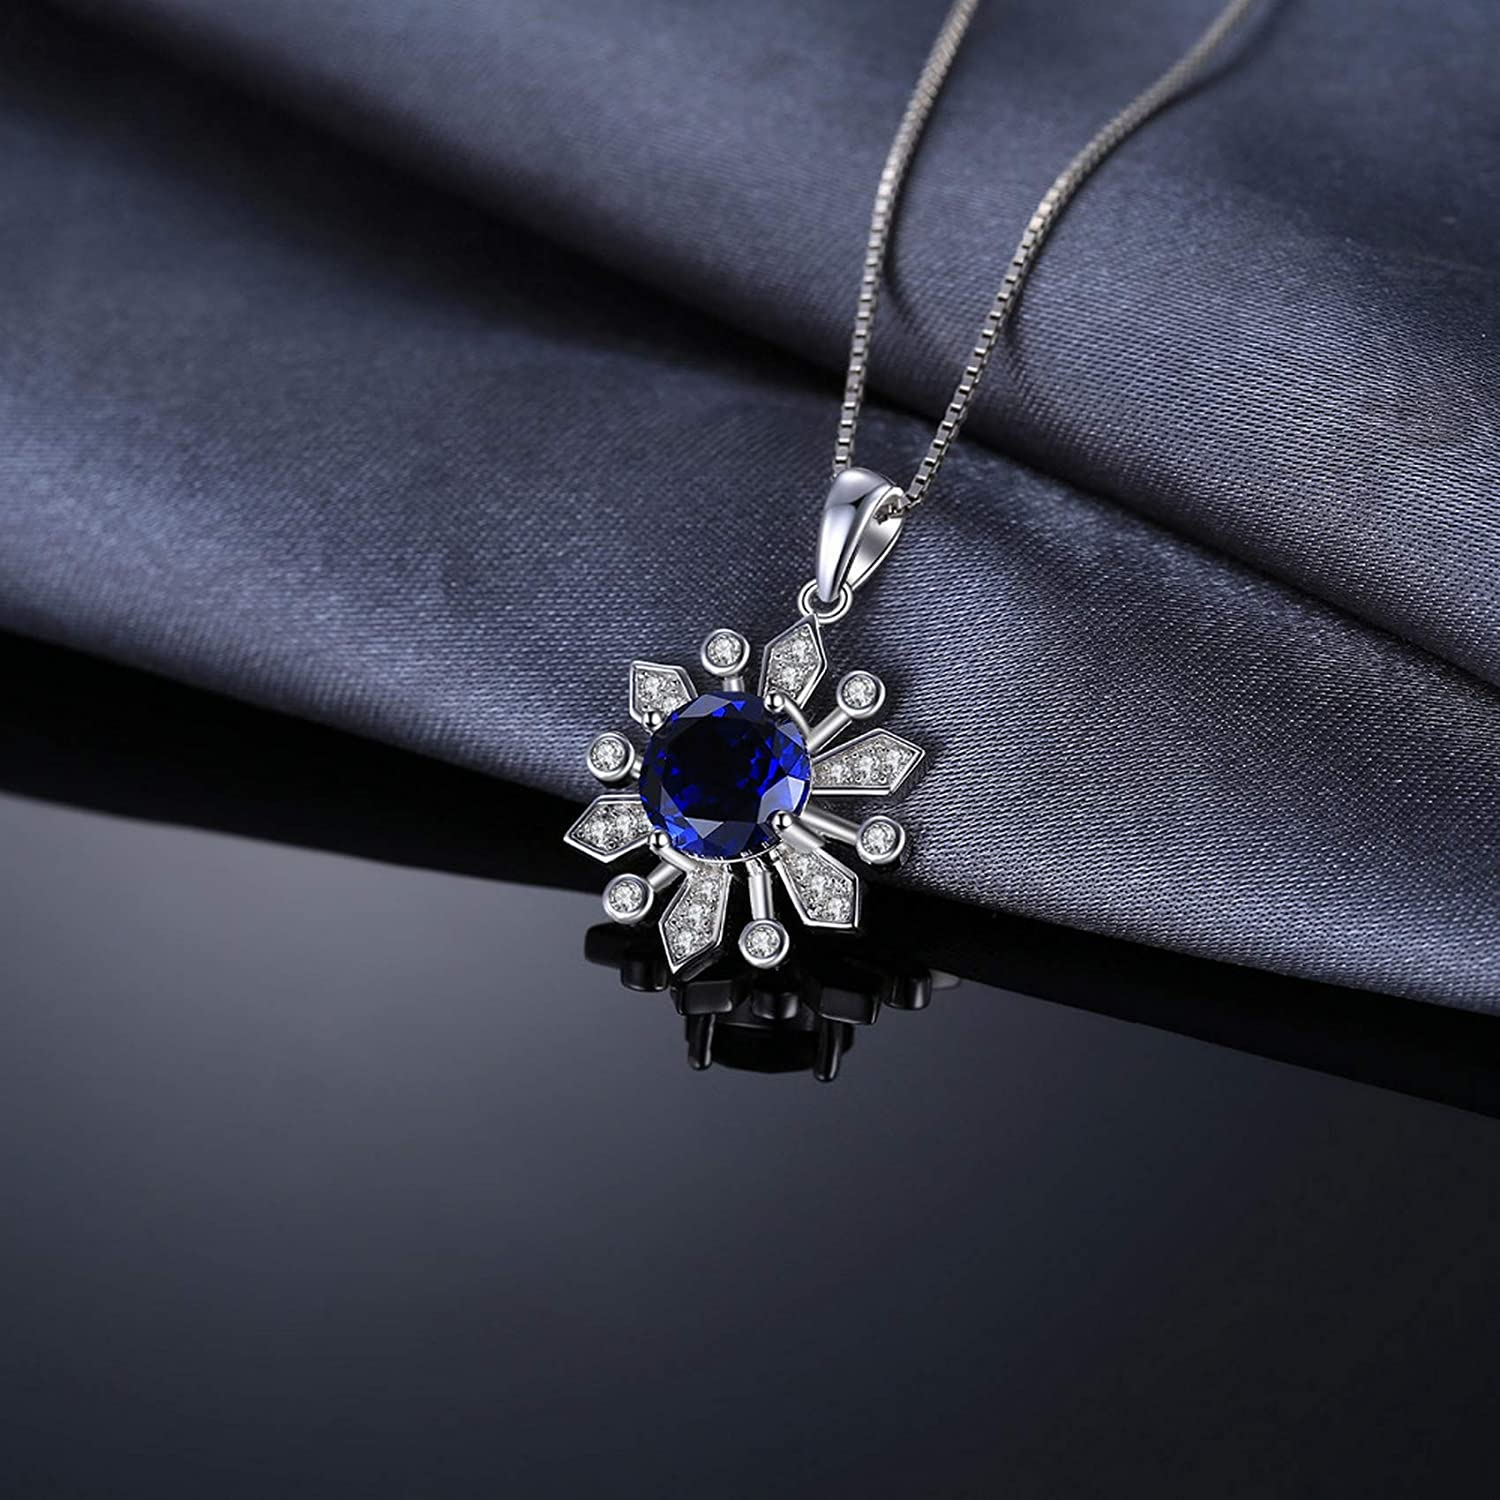 MMC Silver Pendants Chic Flower 3ct Round Vintage Sapphire Necklaces for Womens